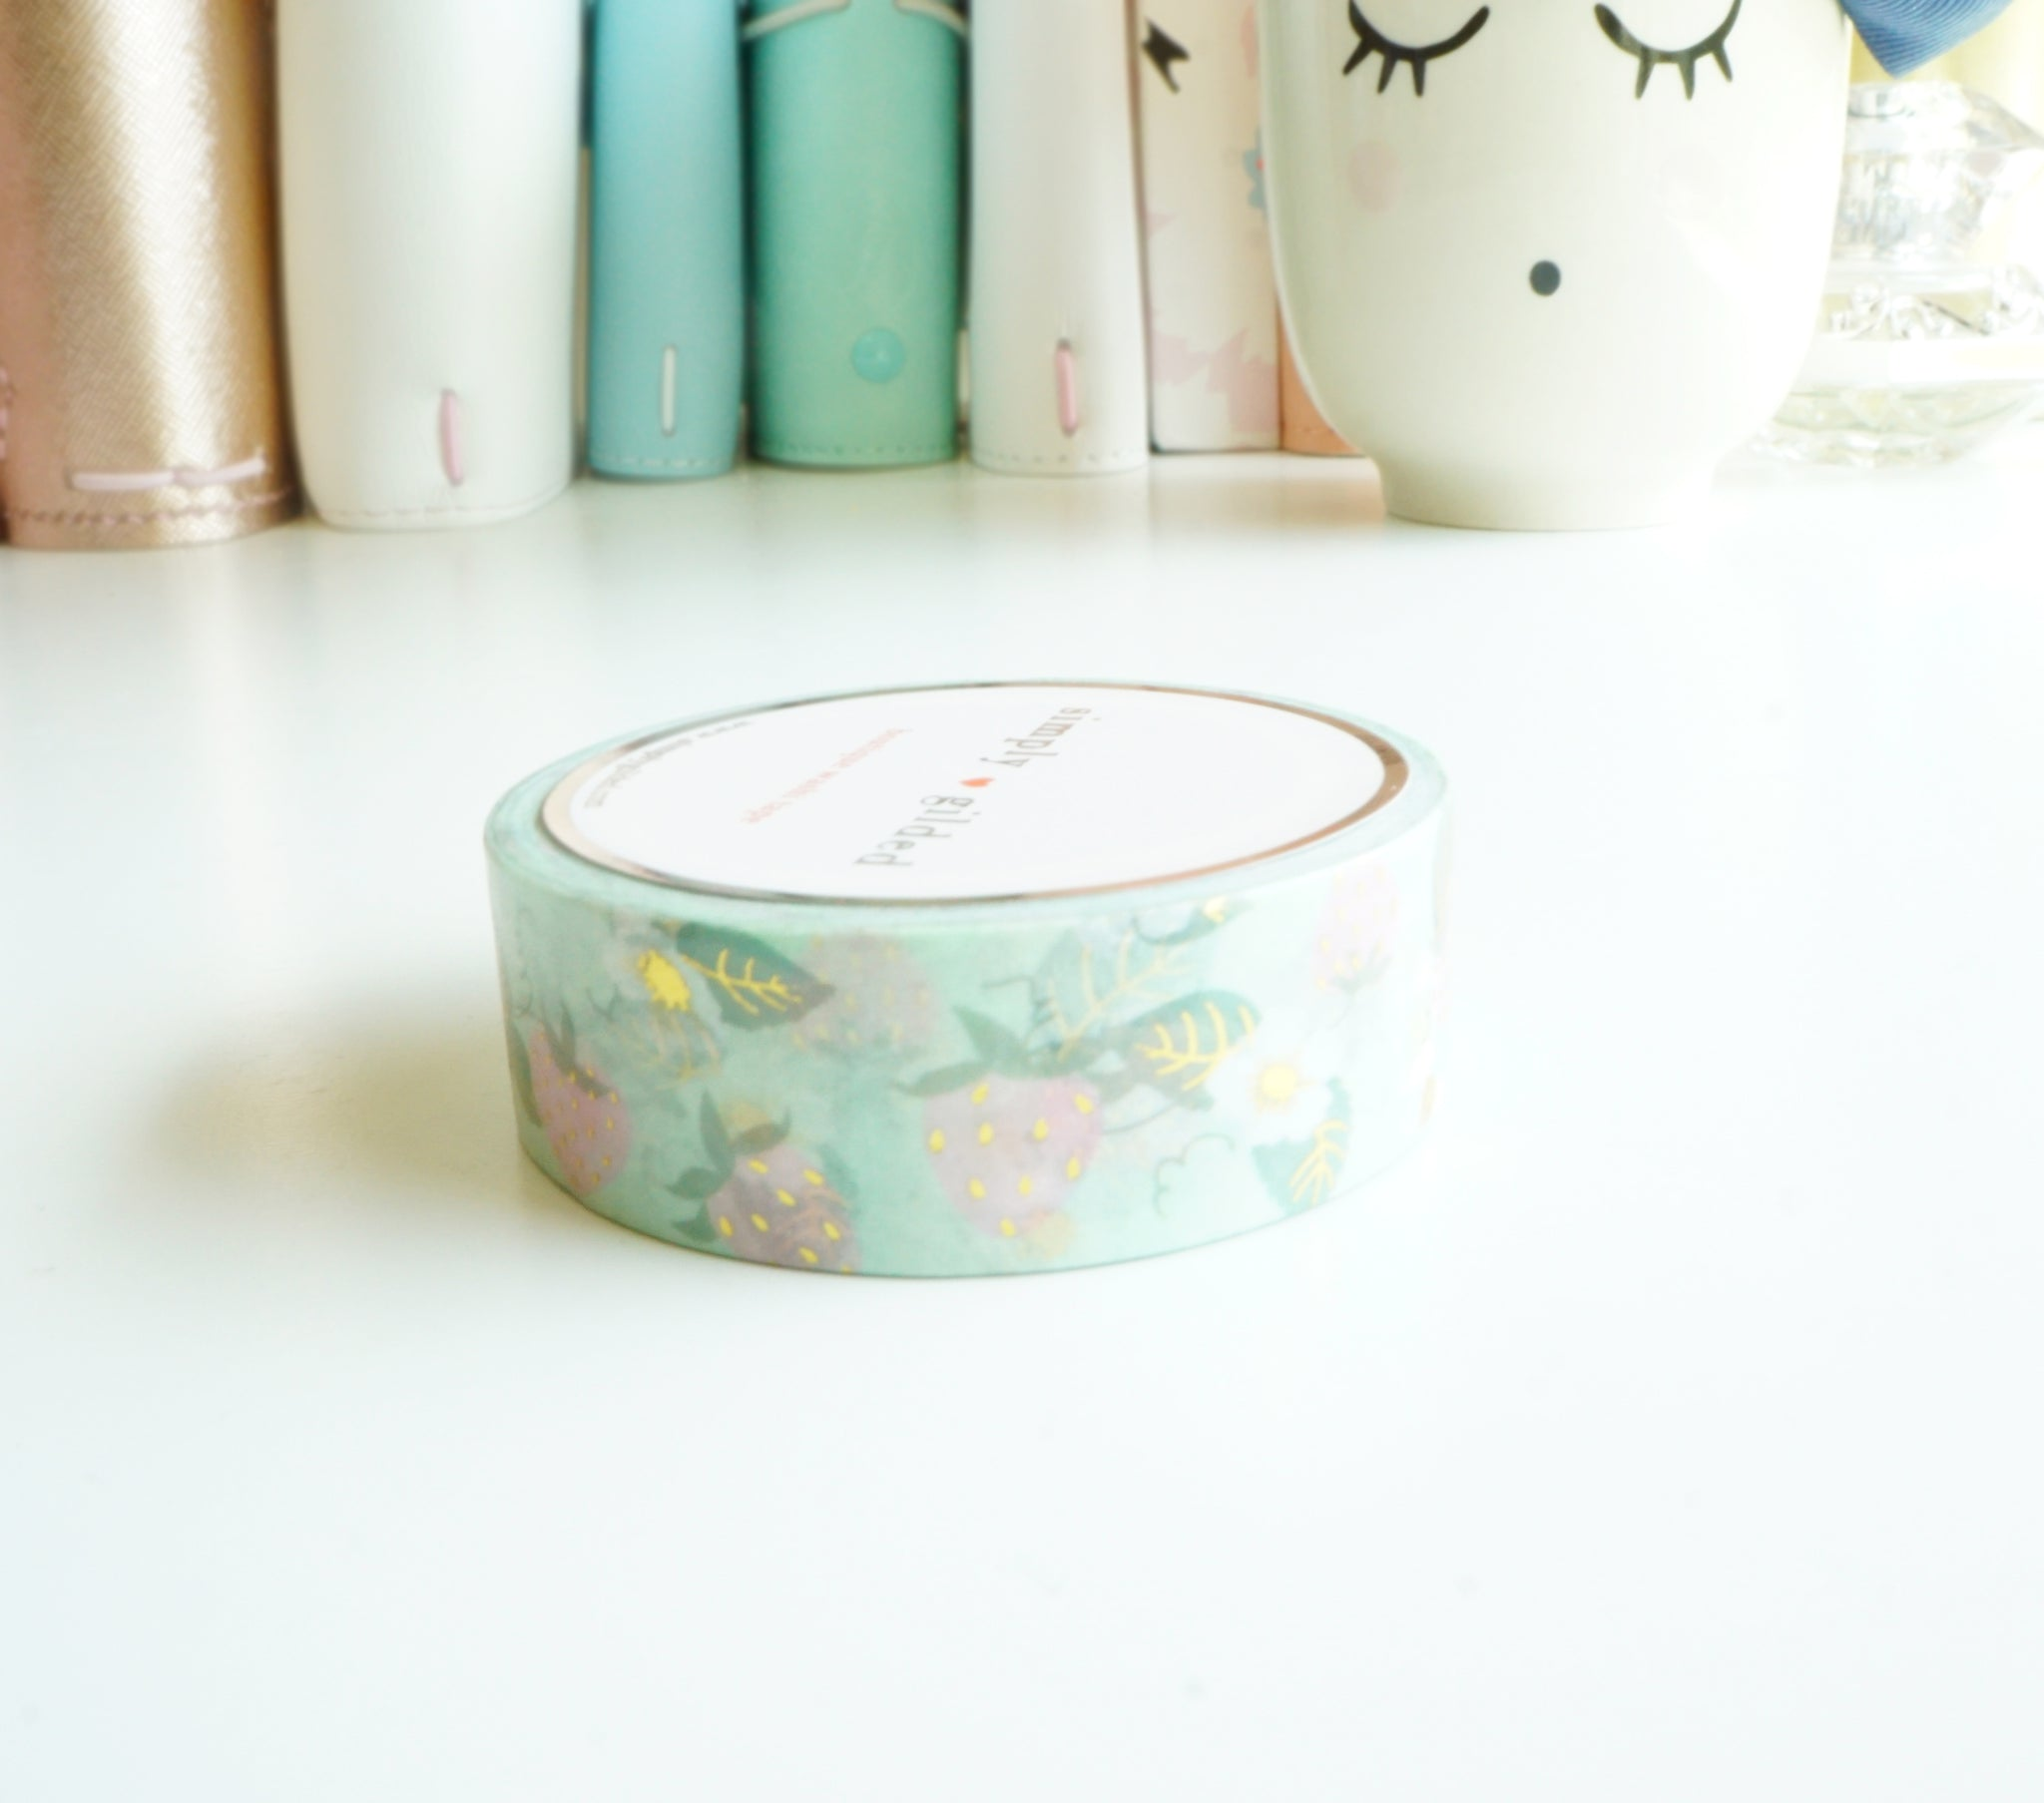 Mint strawberry patch with gold foil accents washi tape